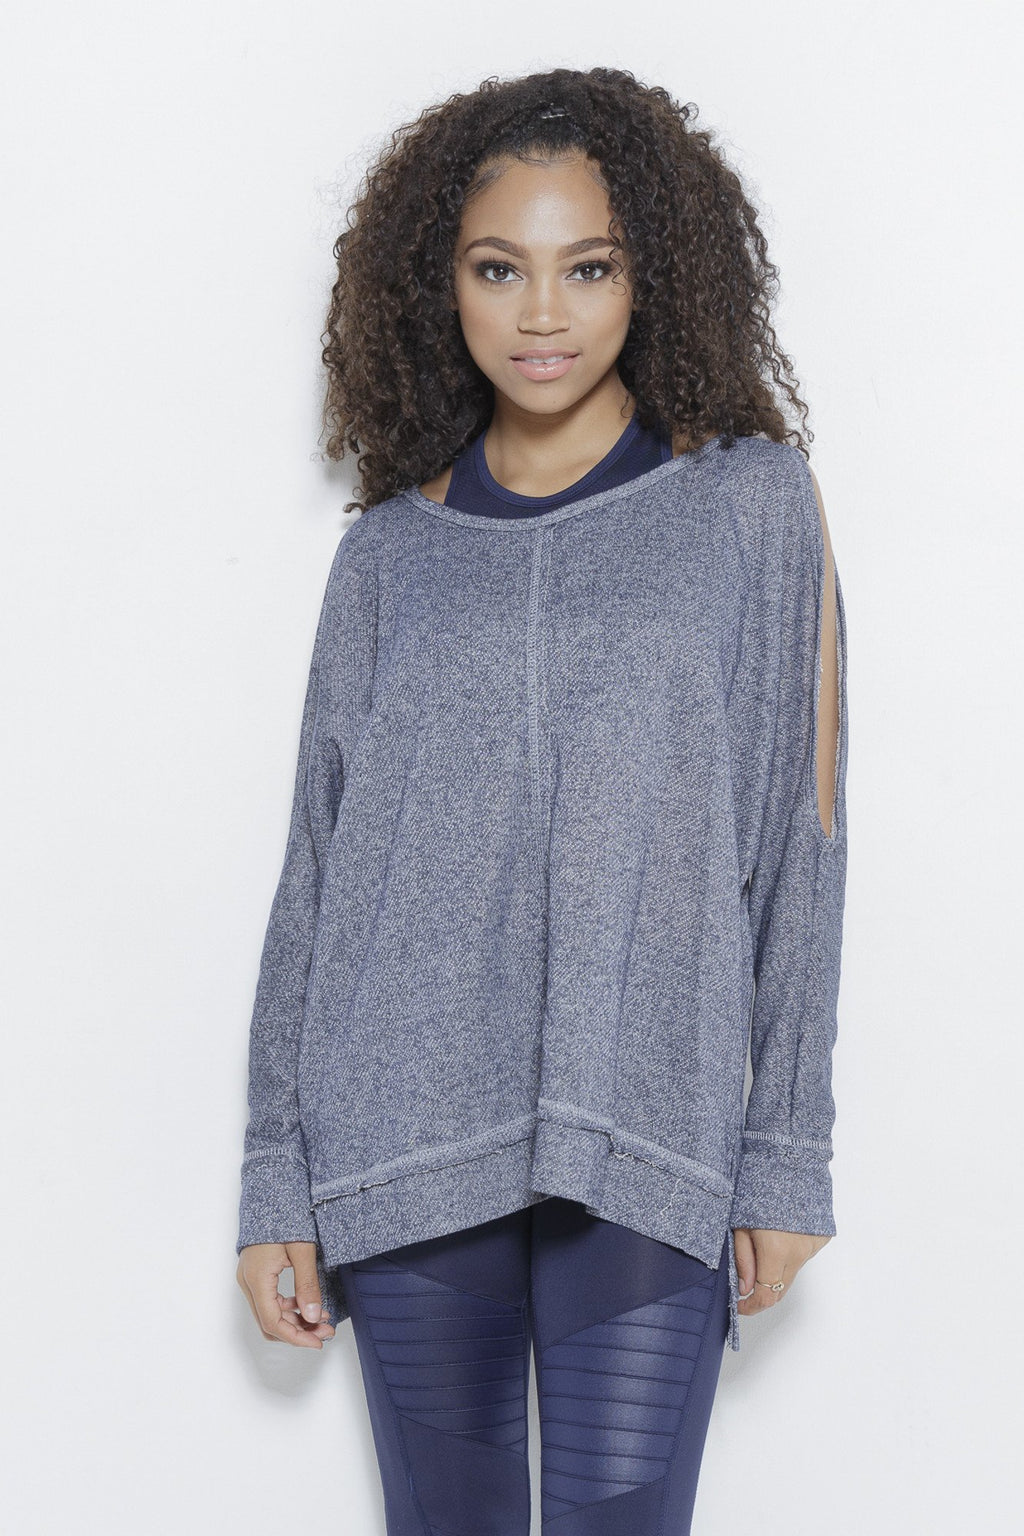 Forever Fair-Navy LS Top Clothing Fair Shade S Heather Navy